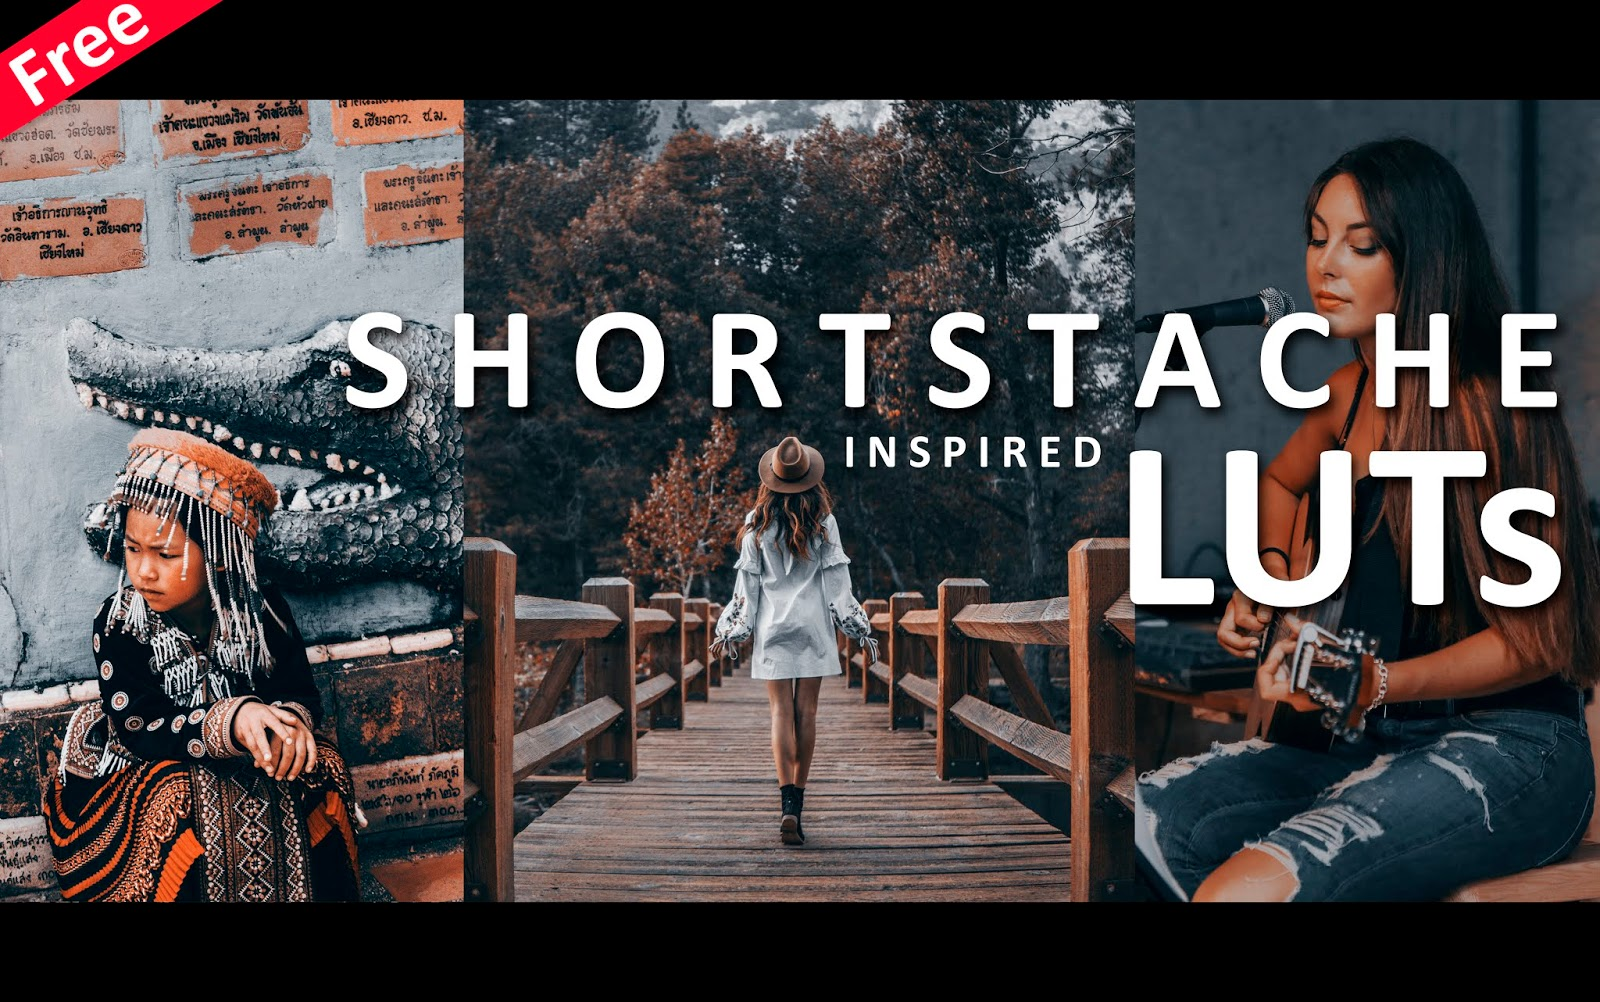 Download Shortstache Inspired LUTs for Free | How to Color Grade Videos, Photos Like Shortstache in Adobe After Effects, Premiere Pro, Photoshop